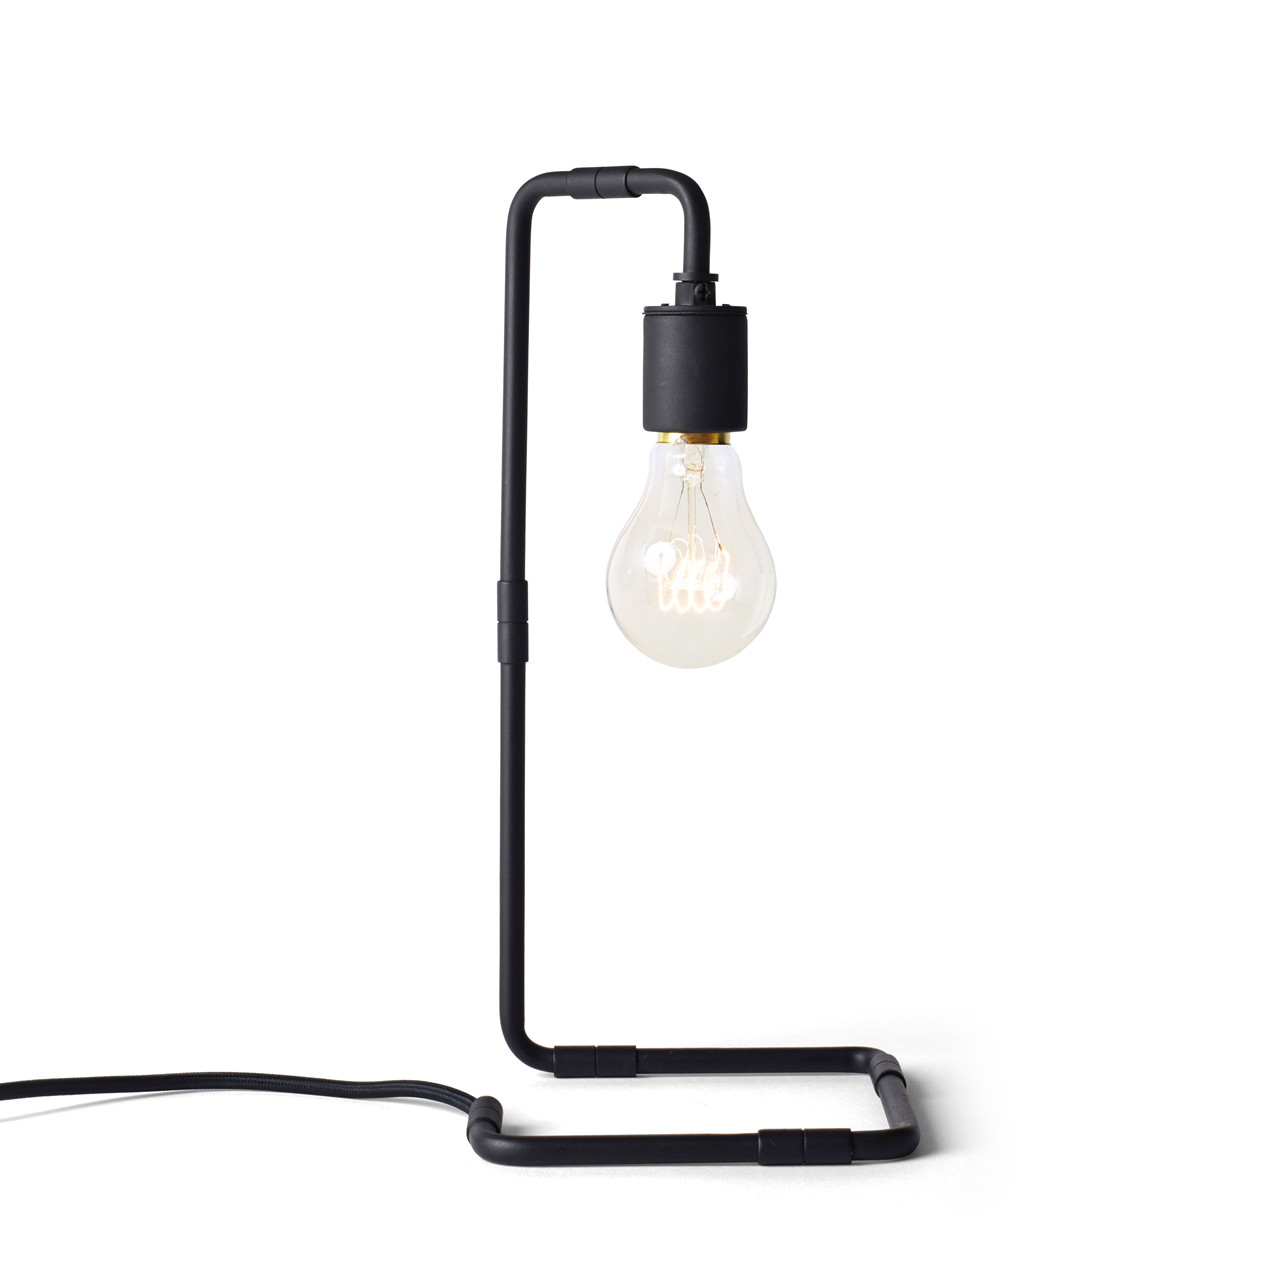 Menu Reade Table Lamp – pris 1199.00